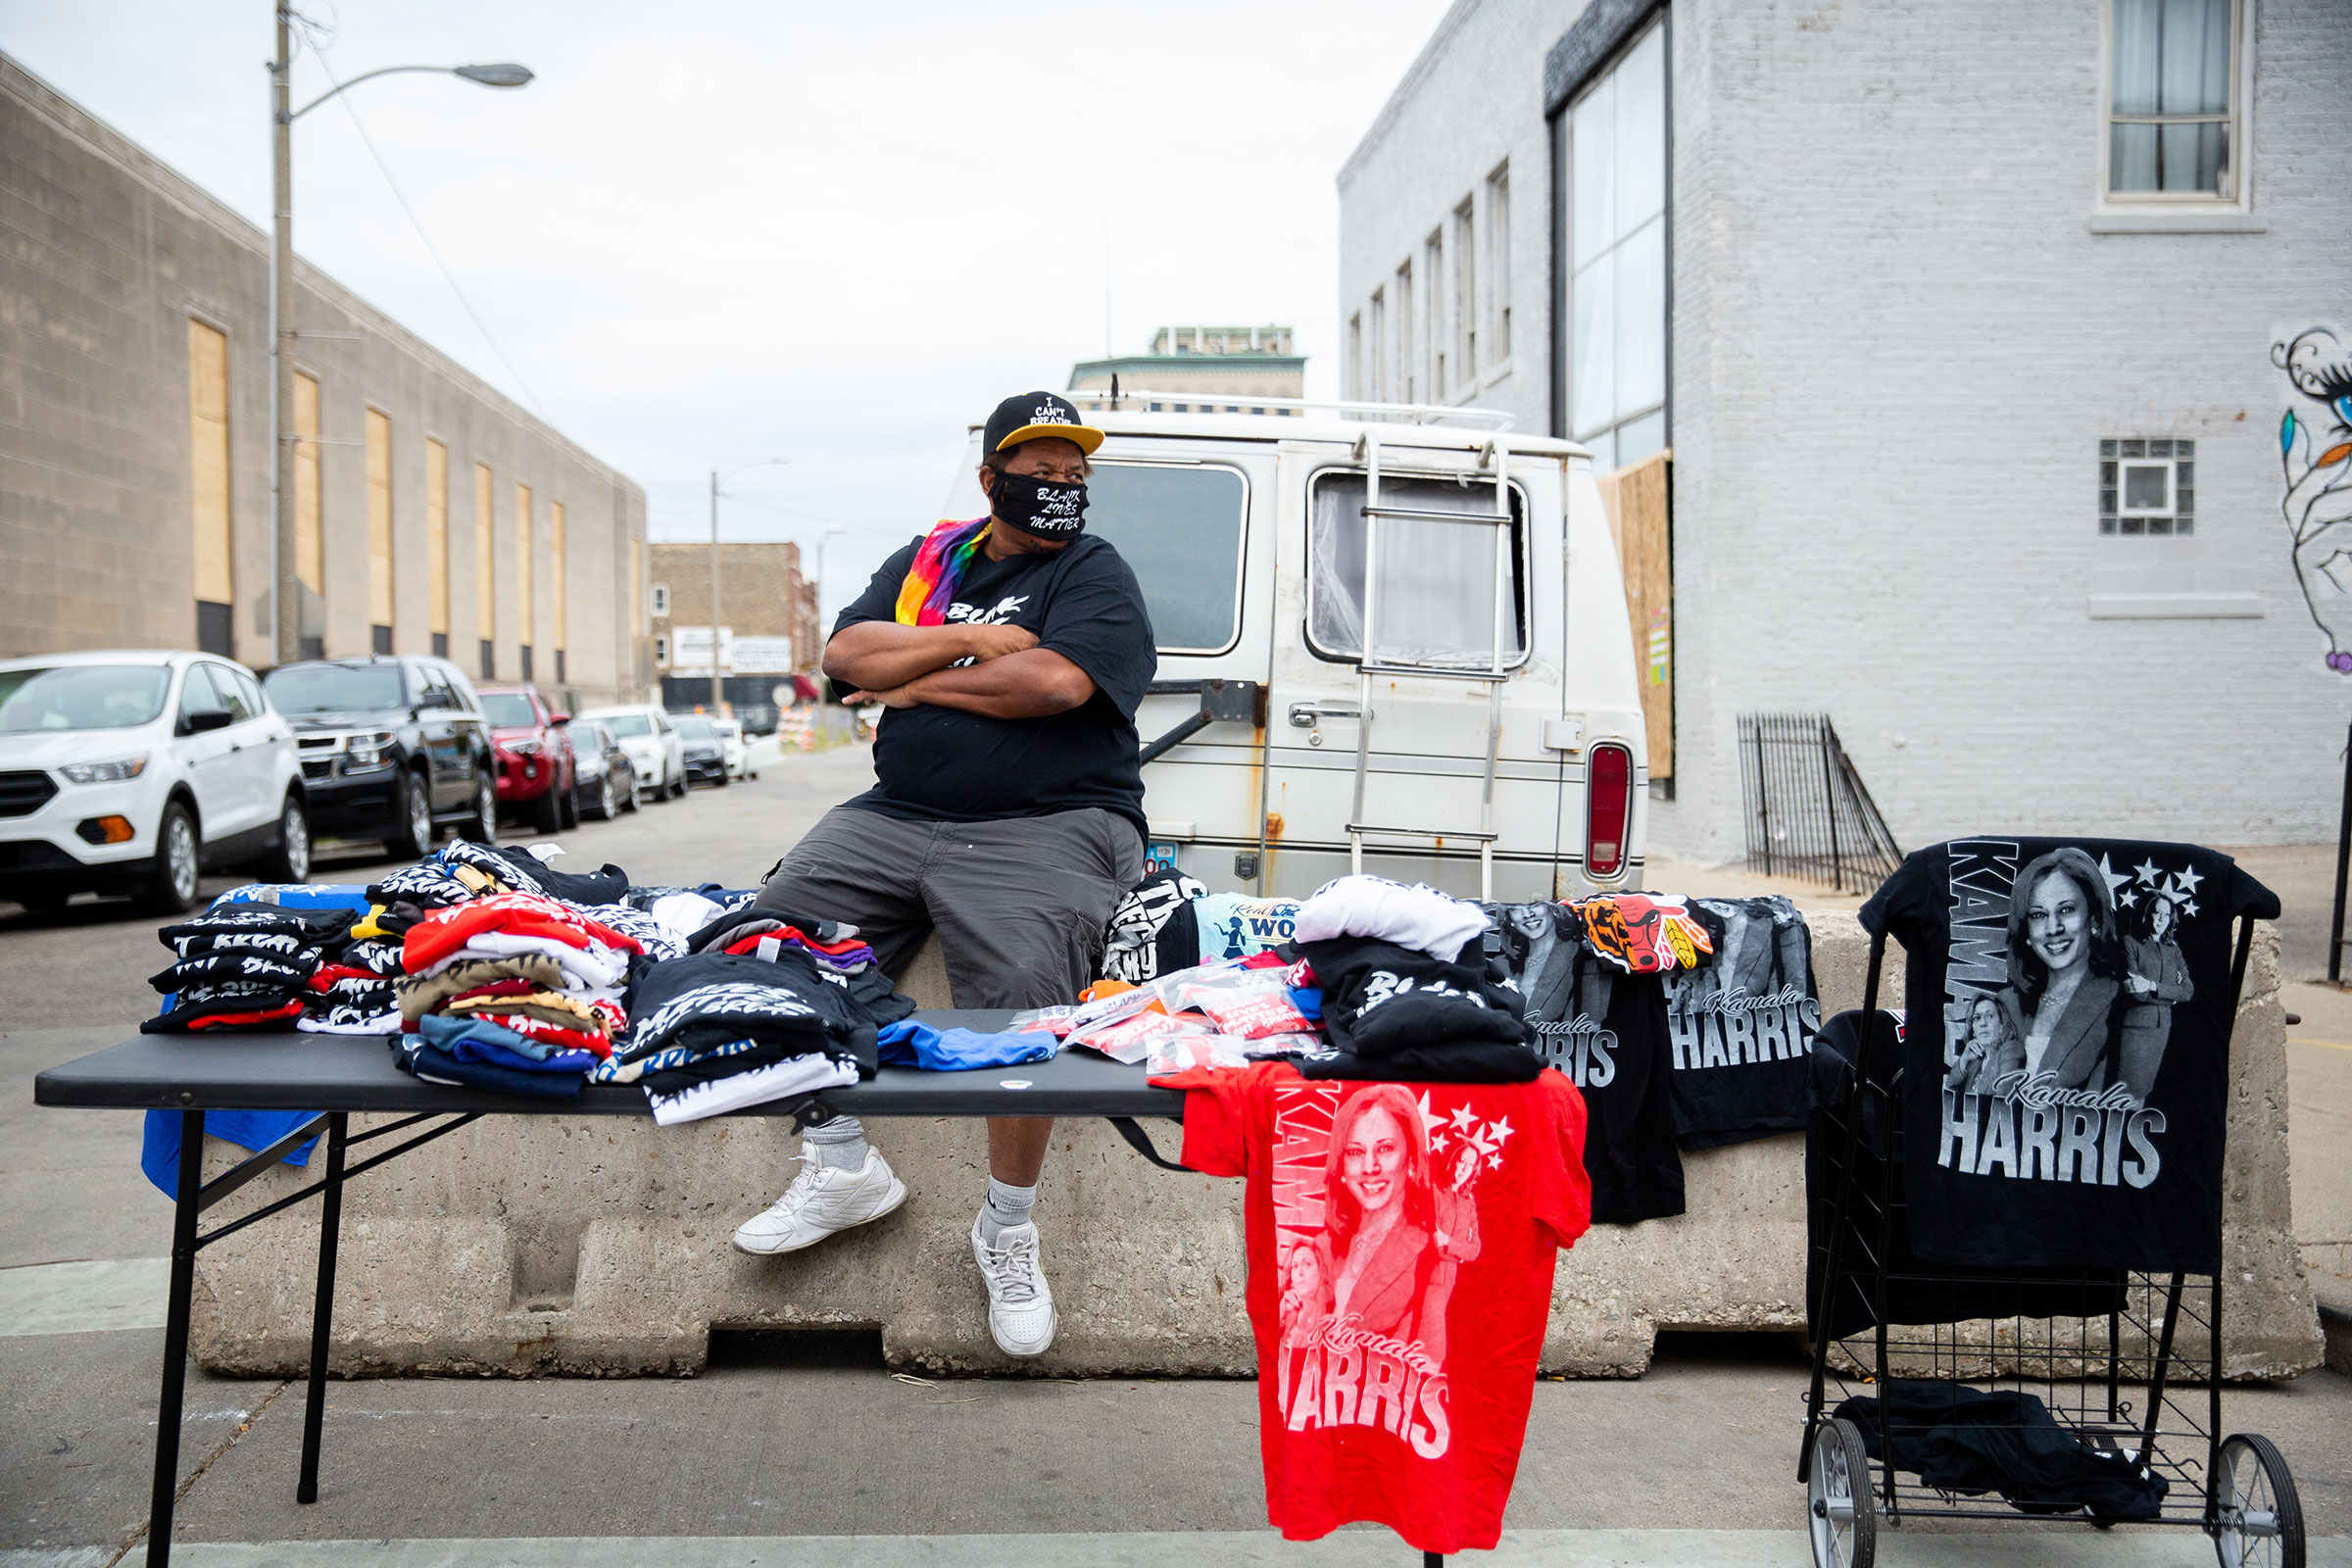 A street vendor selling T-shirts observes a crowd of protesters marching near the county courthouse in Kenosha, Wis., on Sept. 1, 2020.